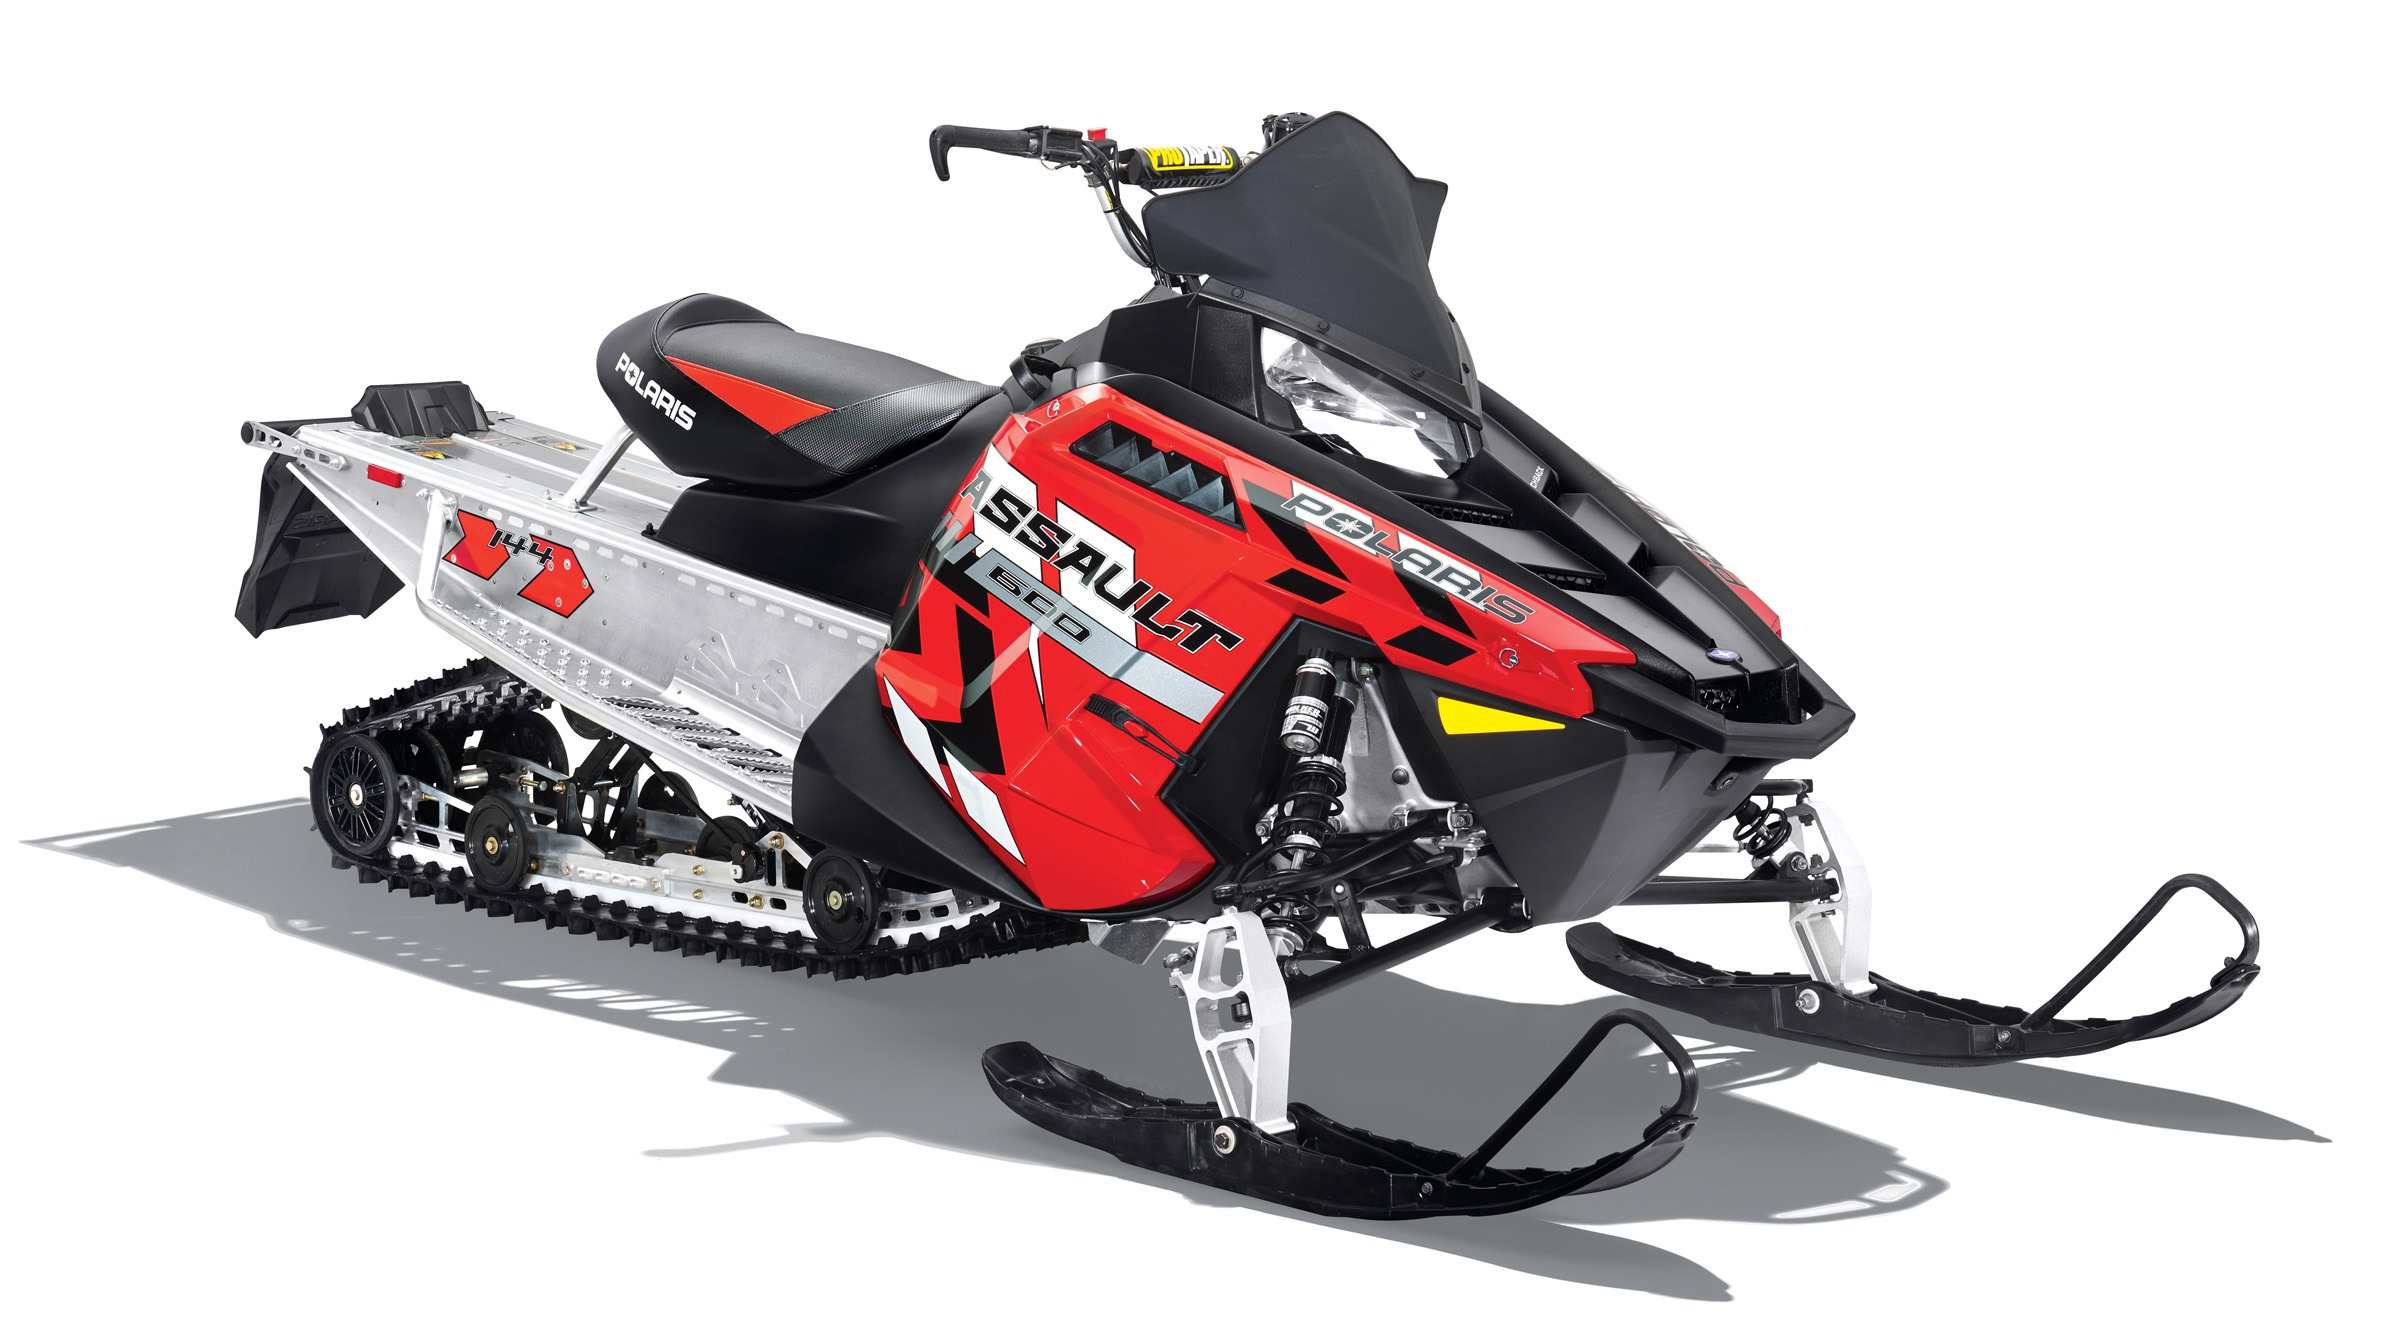 2016 Polaris 600 SWITCHBACK ASSAULT144 in Lake Mills, Iowa